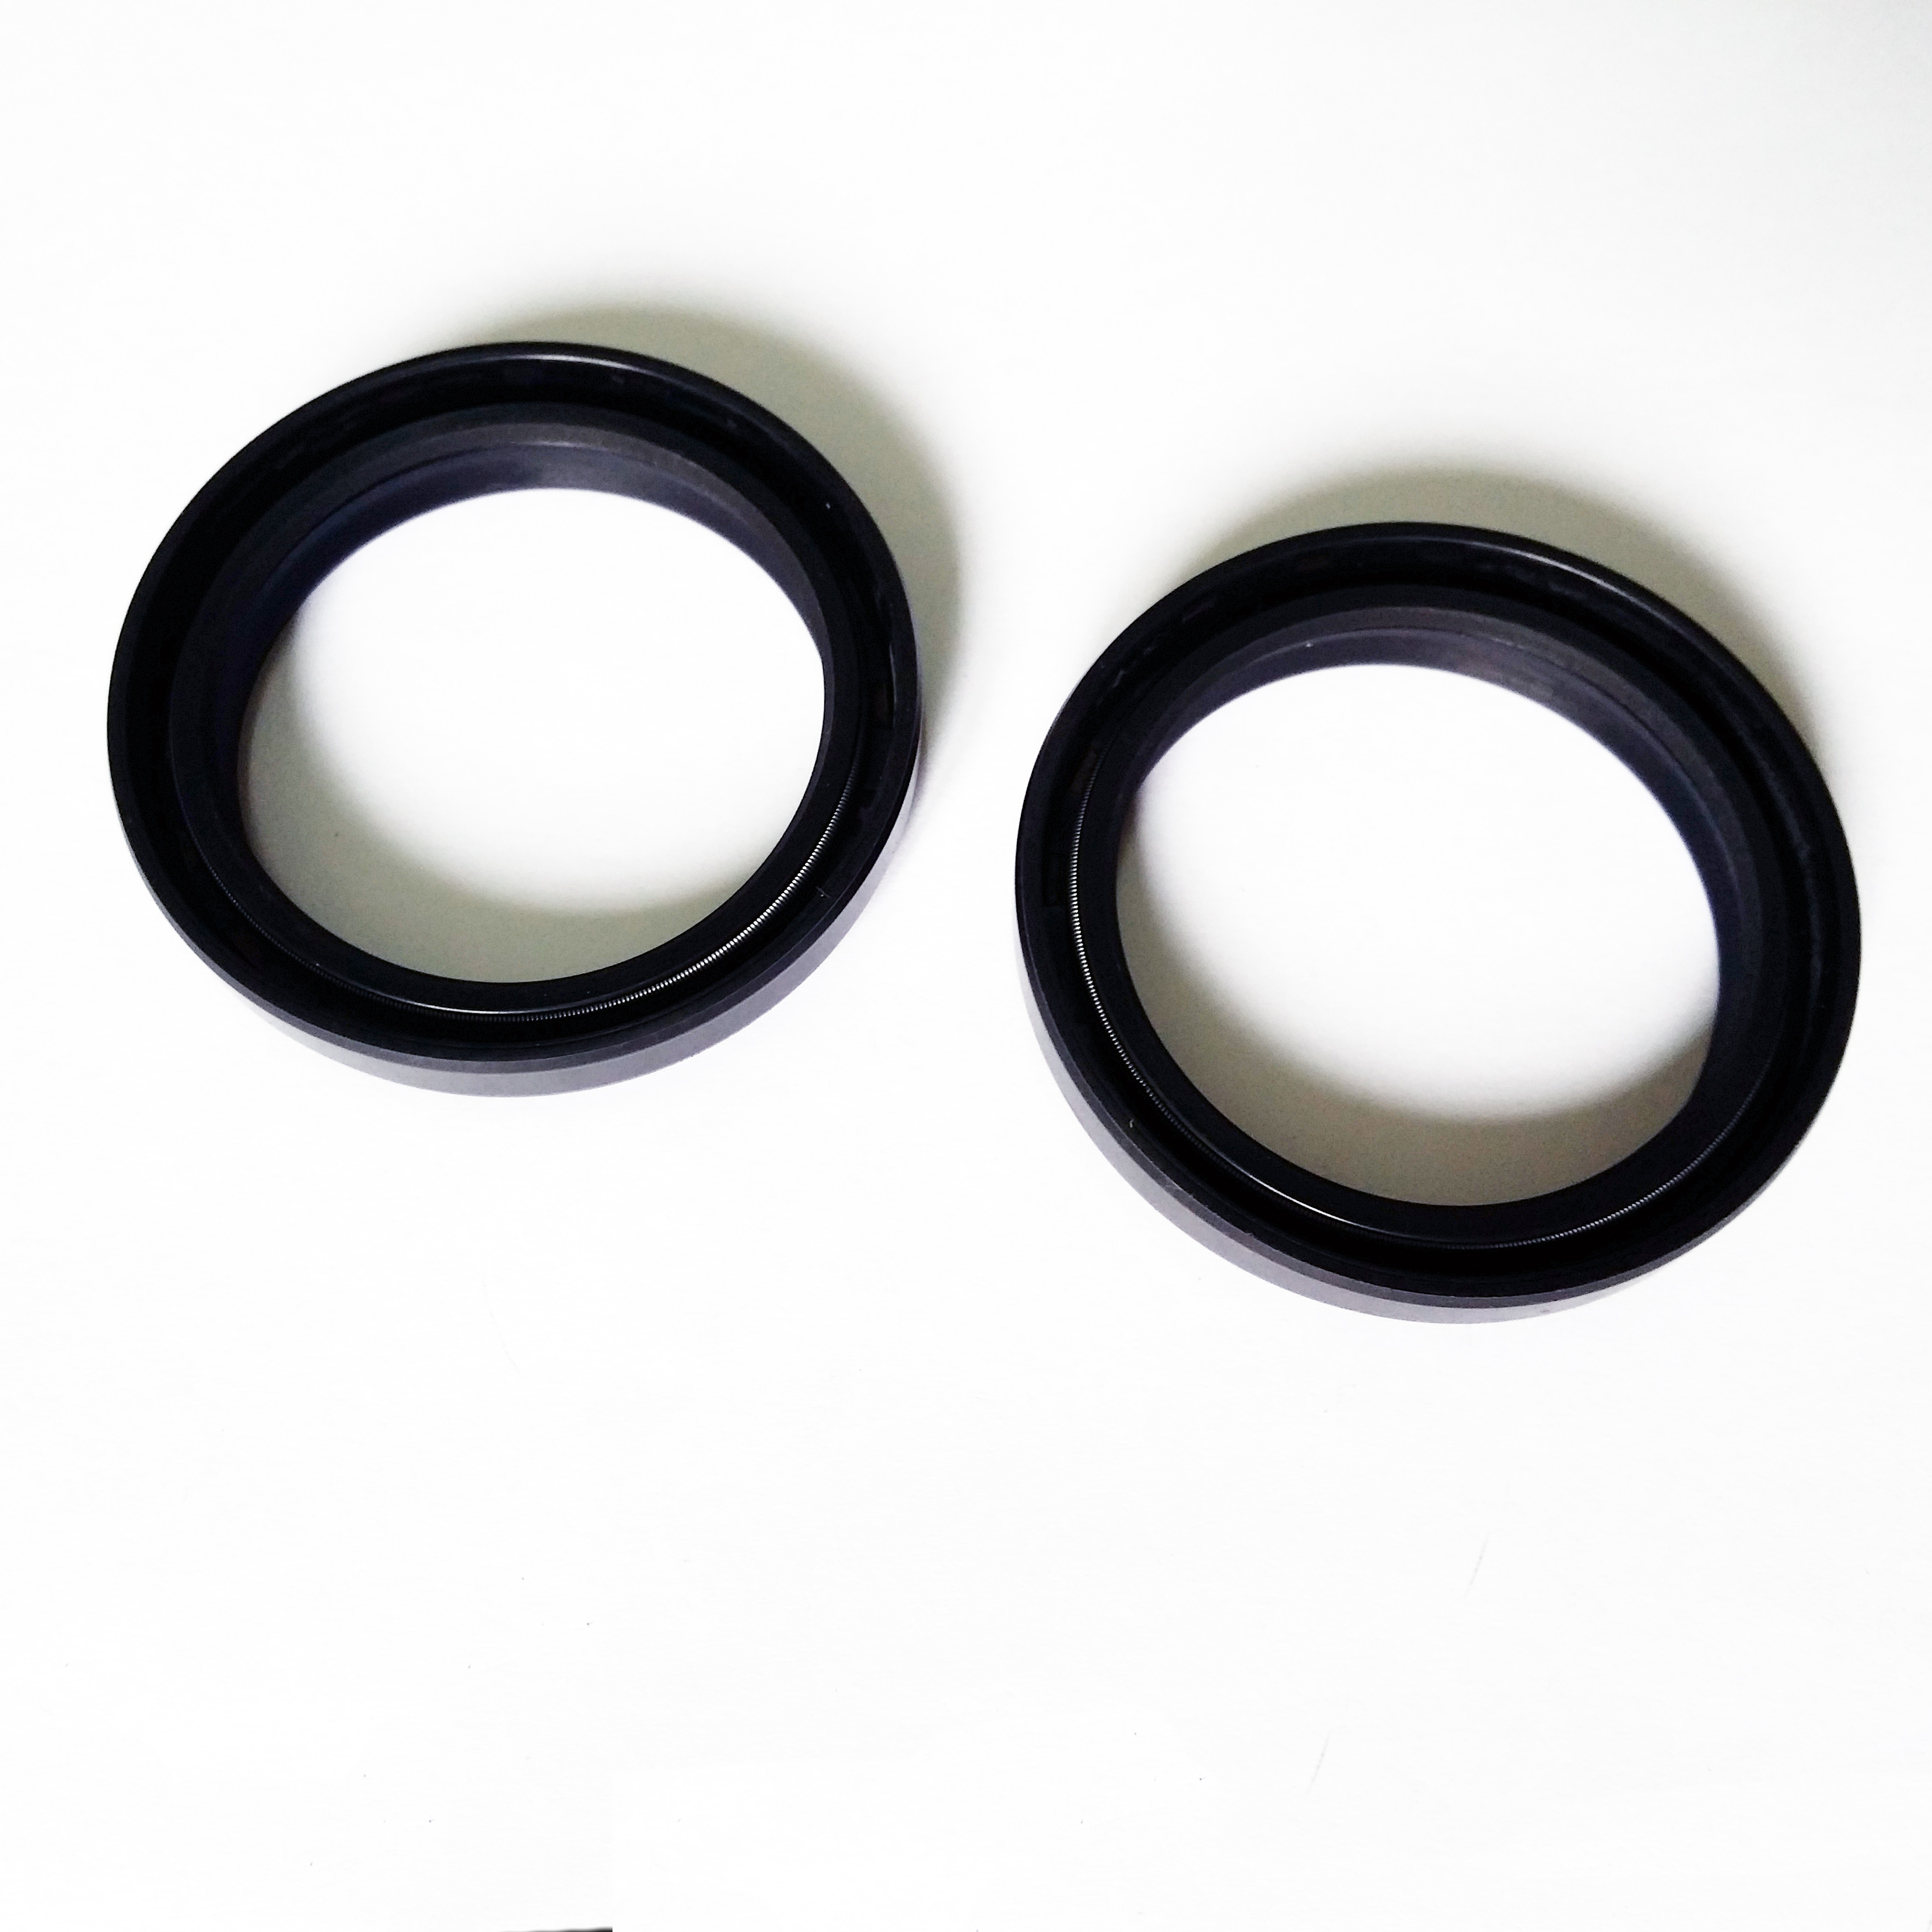 K-Tech Husqvarna TC449 2011-2013 NOK Front Fork Oil Seals